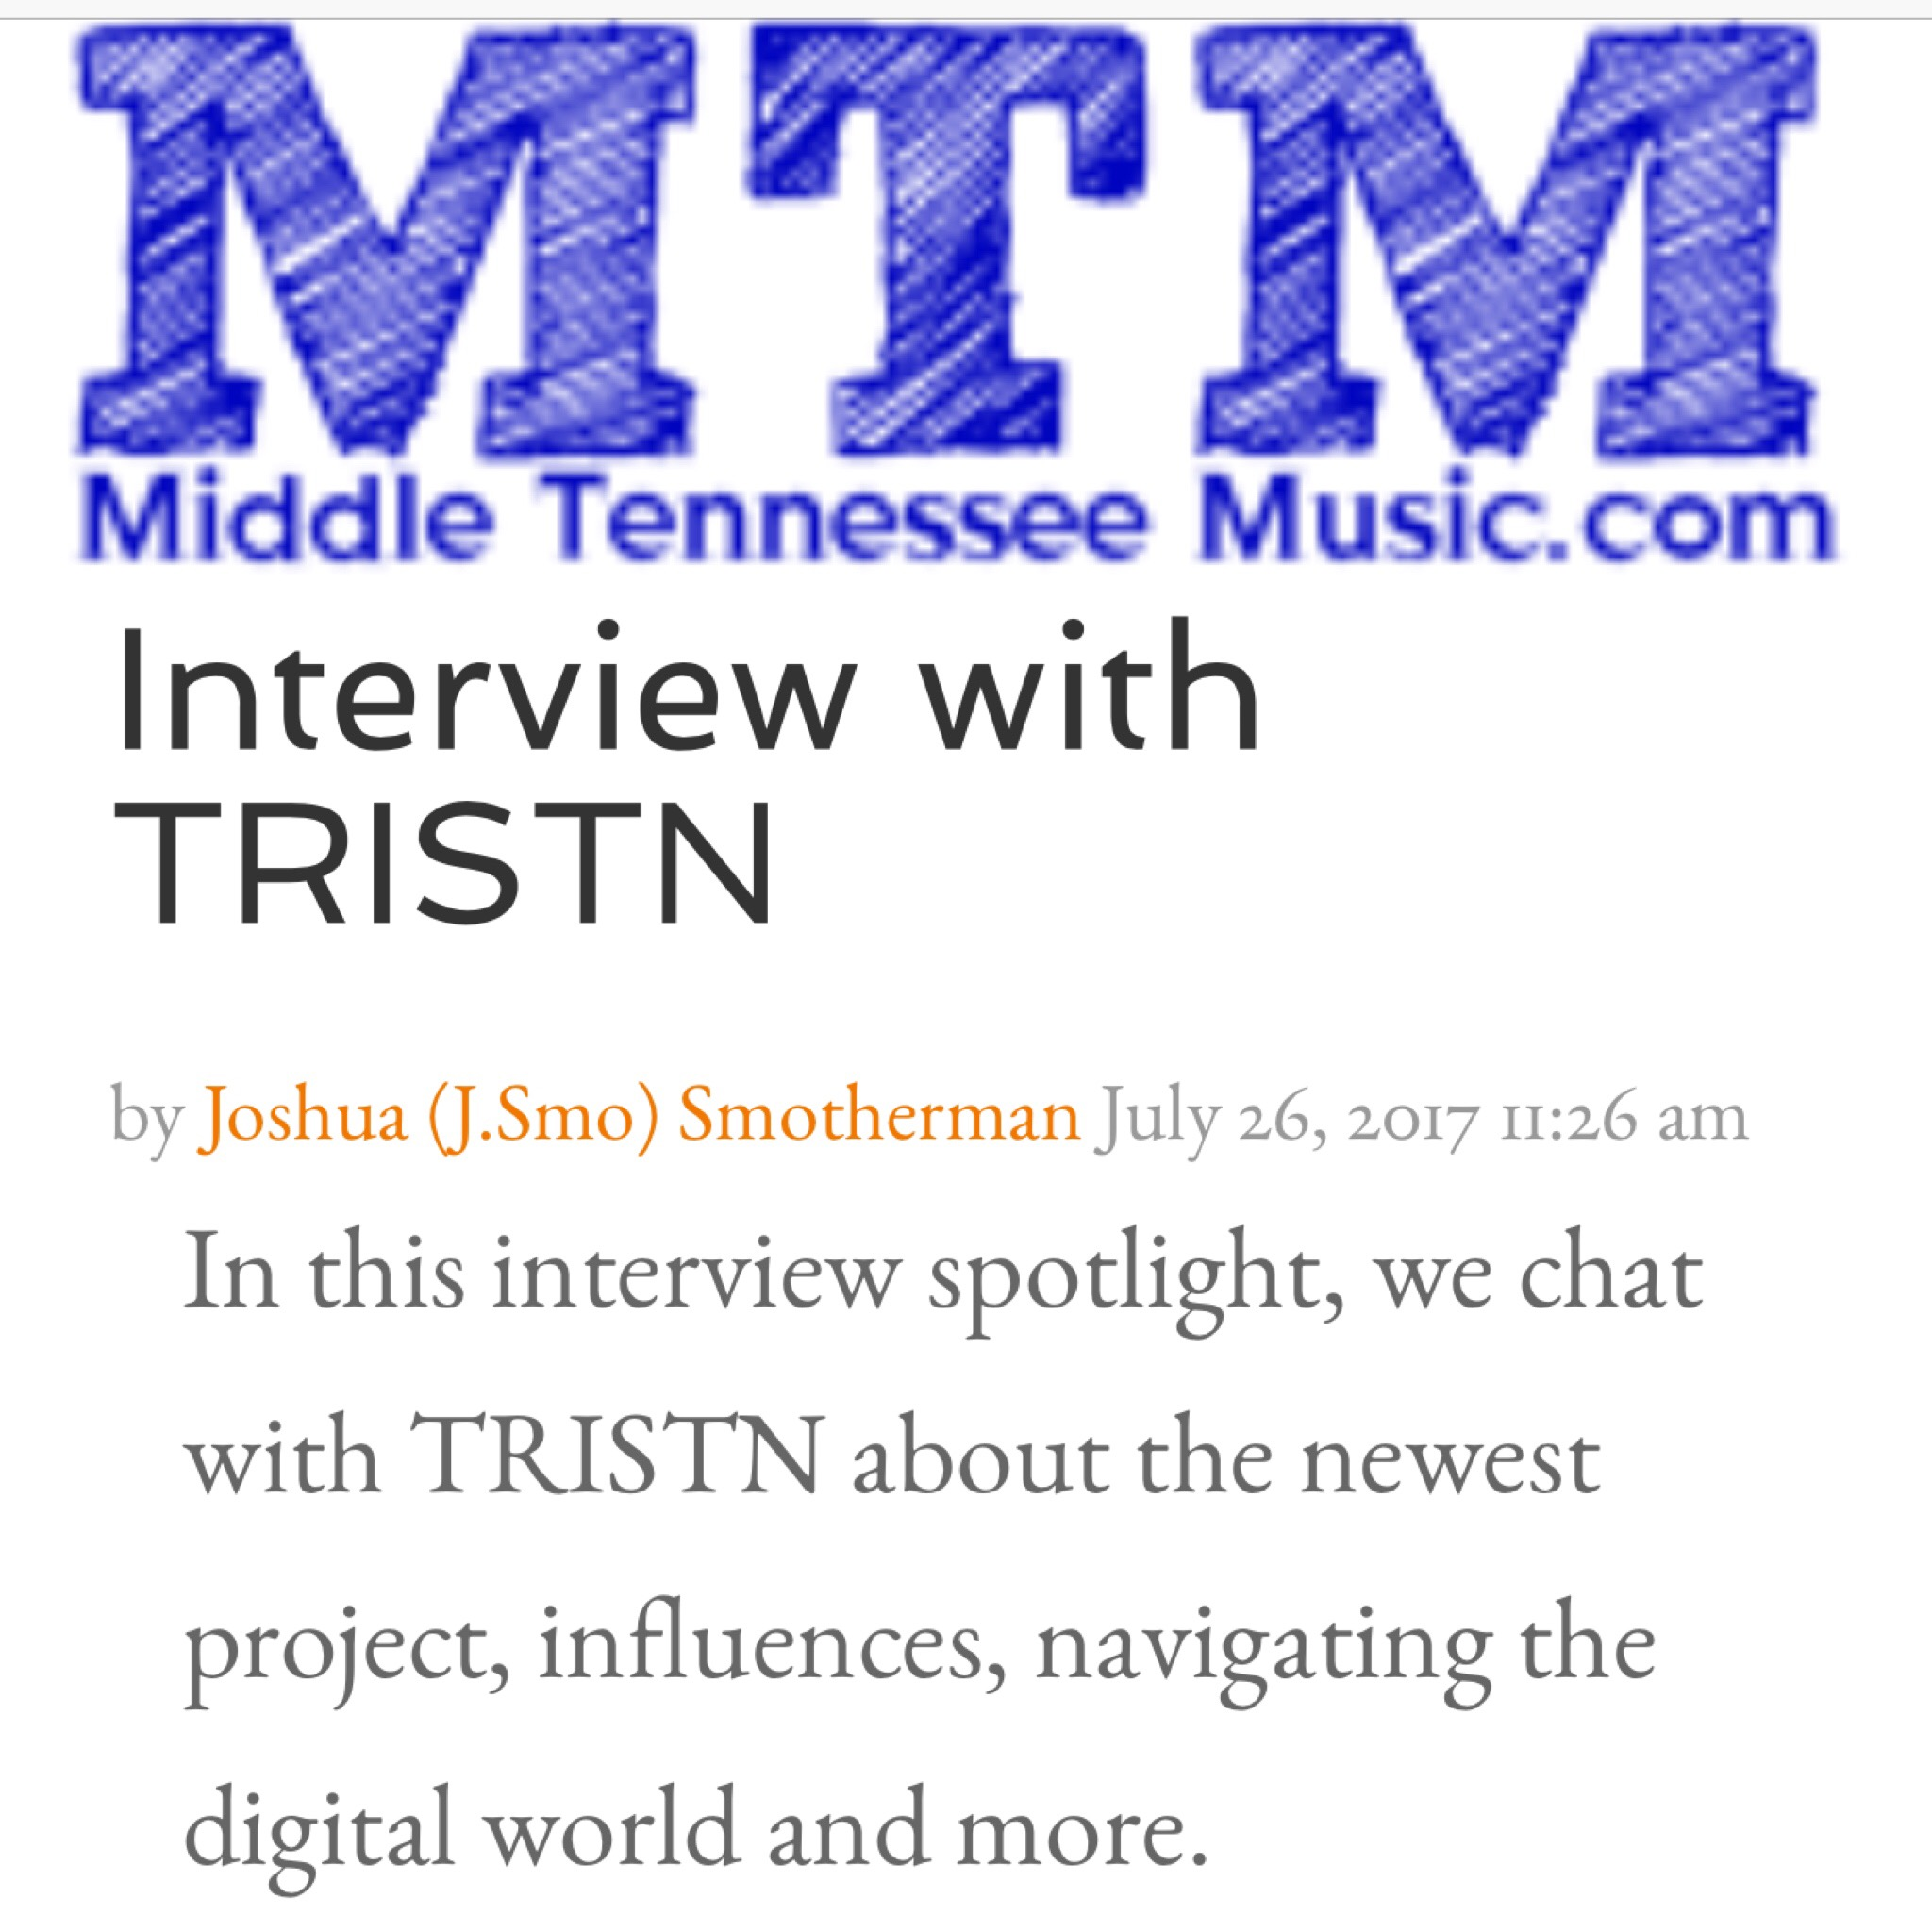 MIDDLE TENNESSEE MUSIC - Do you face any challenges as an indie musician in a digital age? On the flip side, how has technology helped you (if it has)?